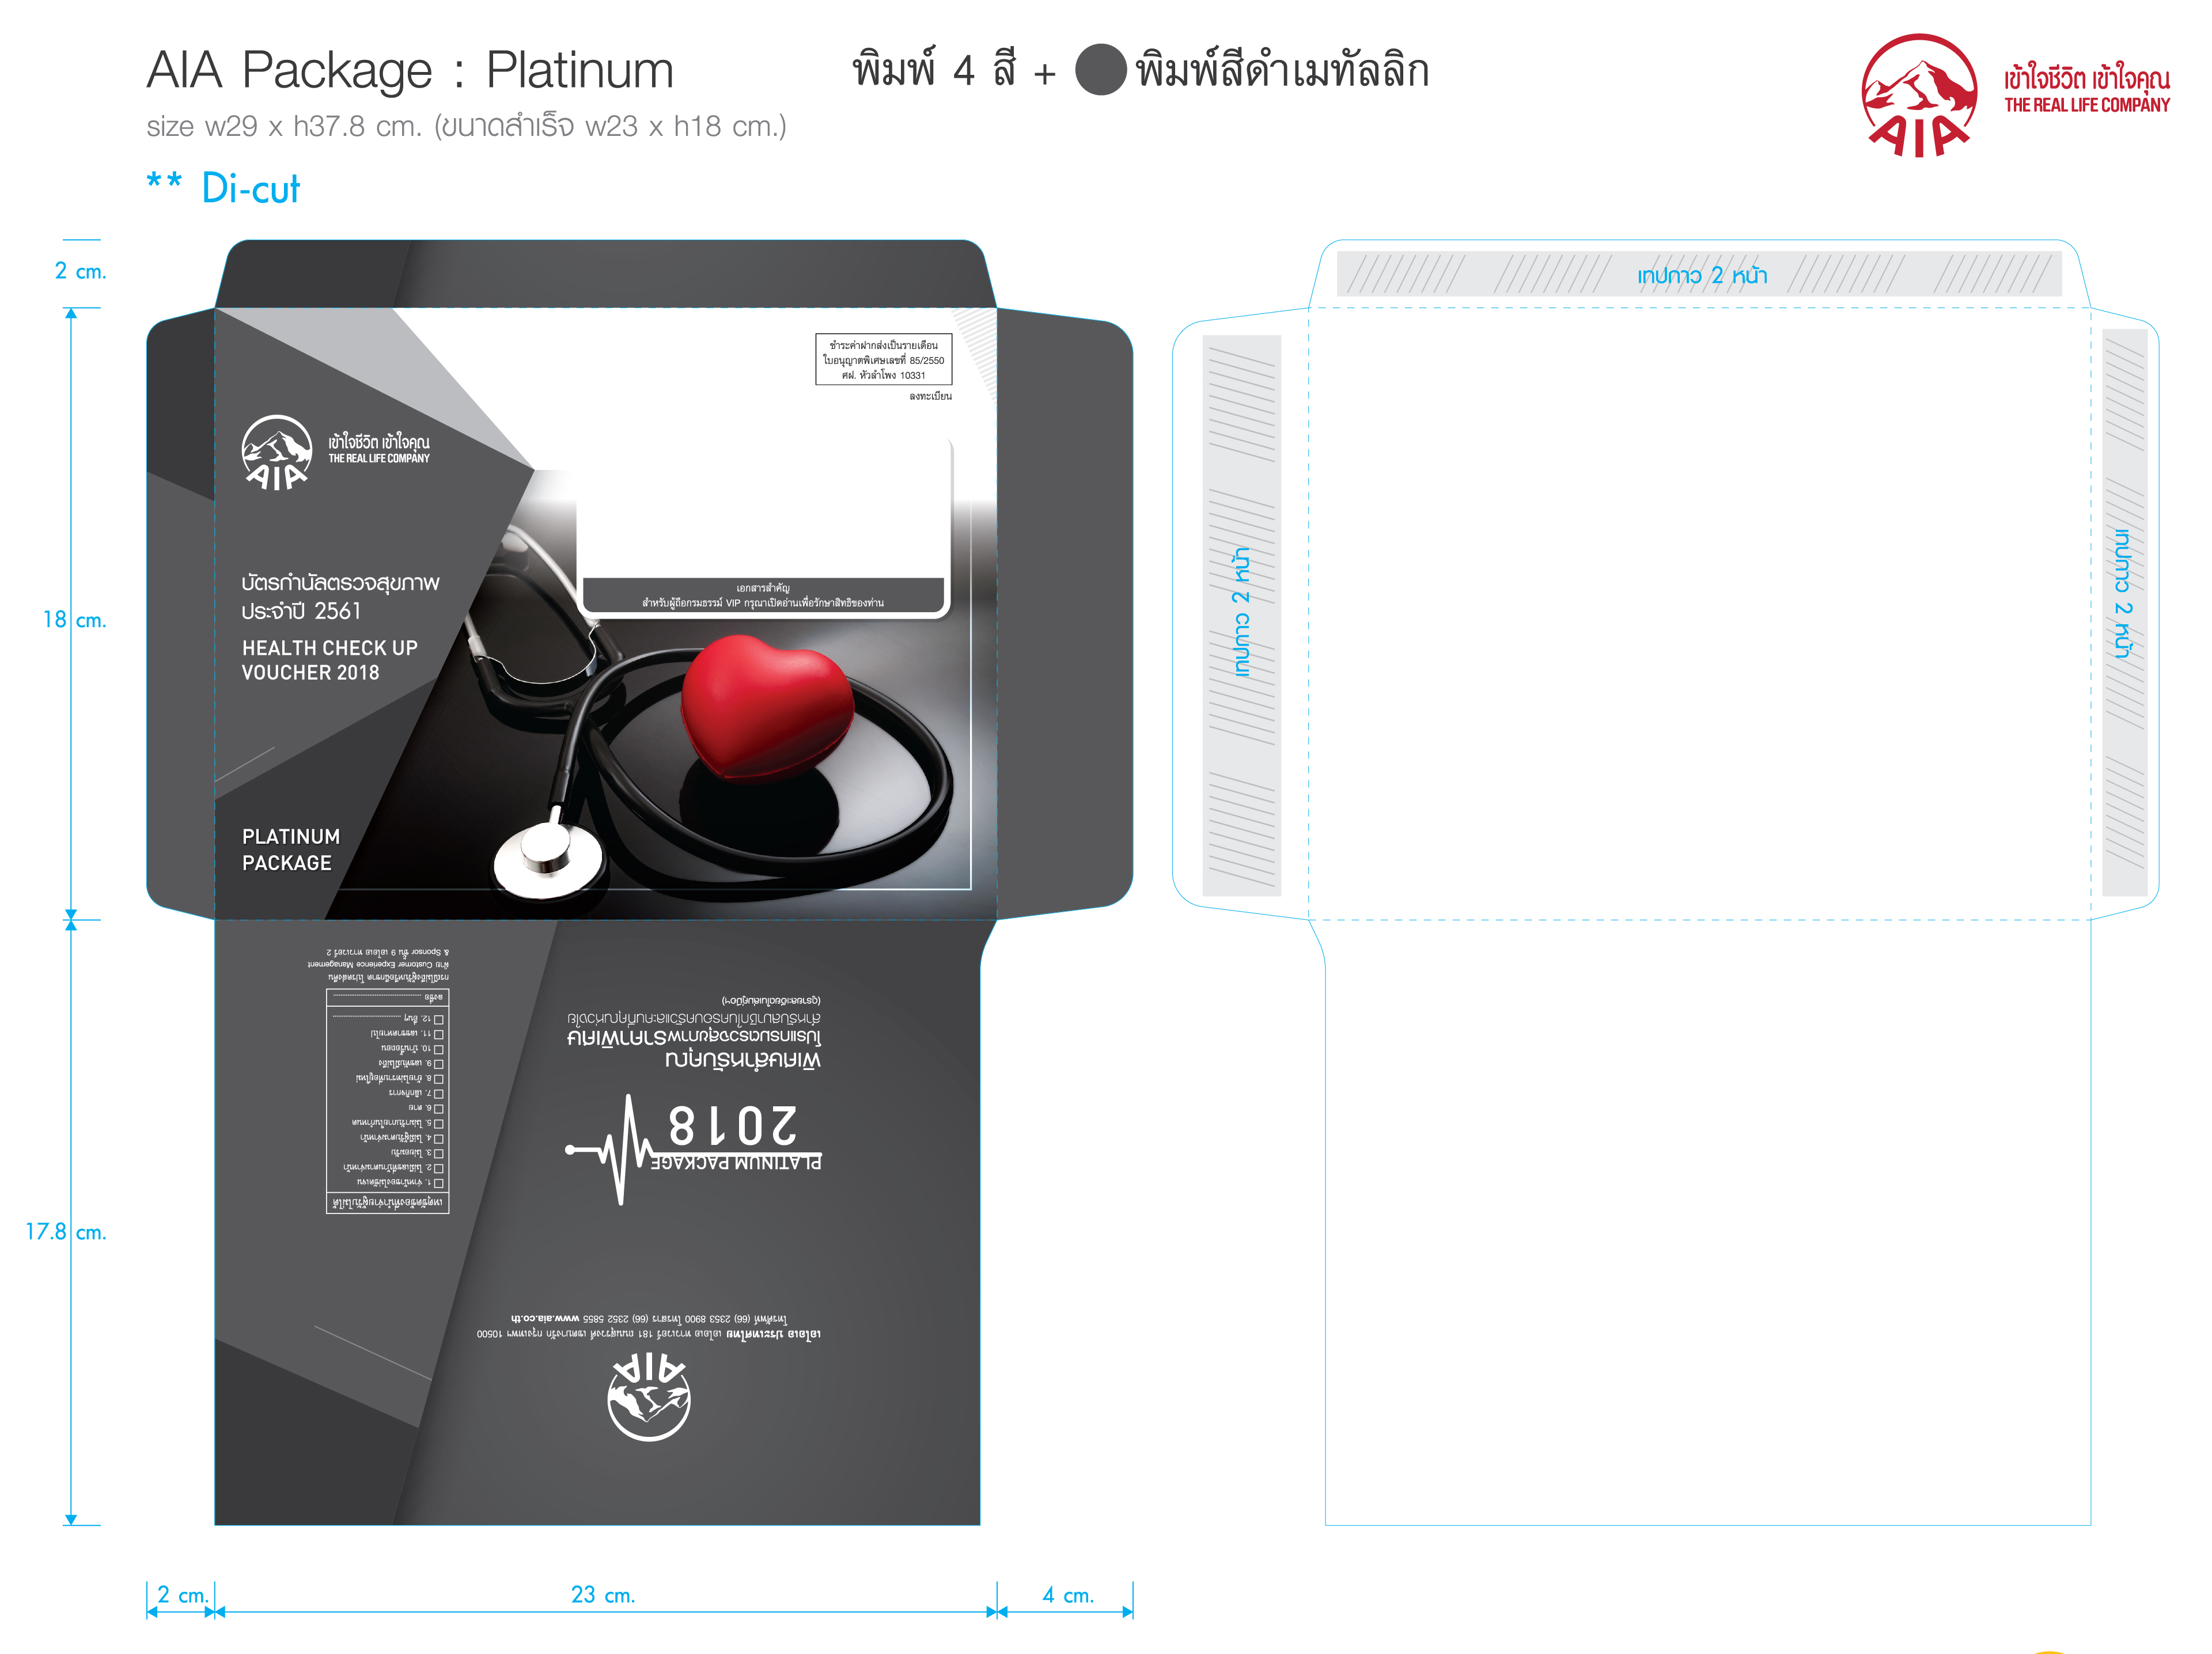 AW_AIA_Health Check 2018_Package Platinum_OL-01